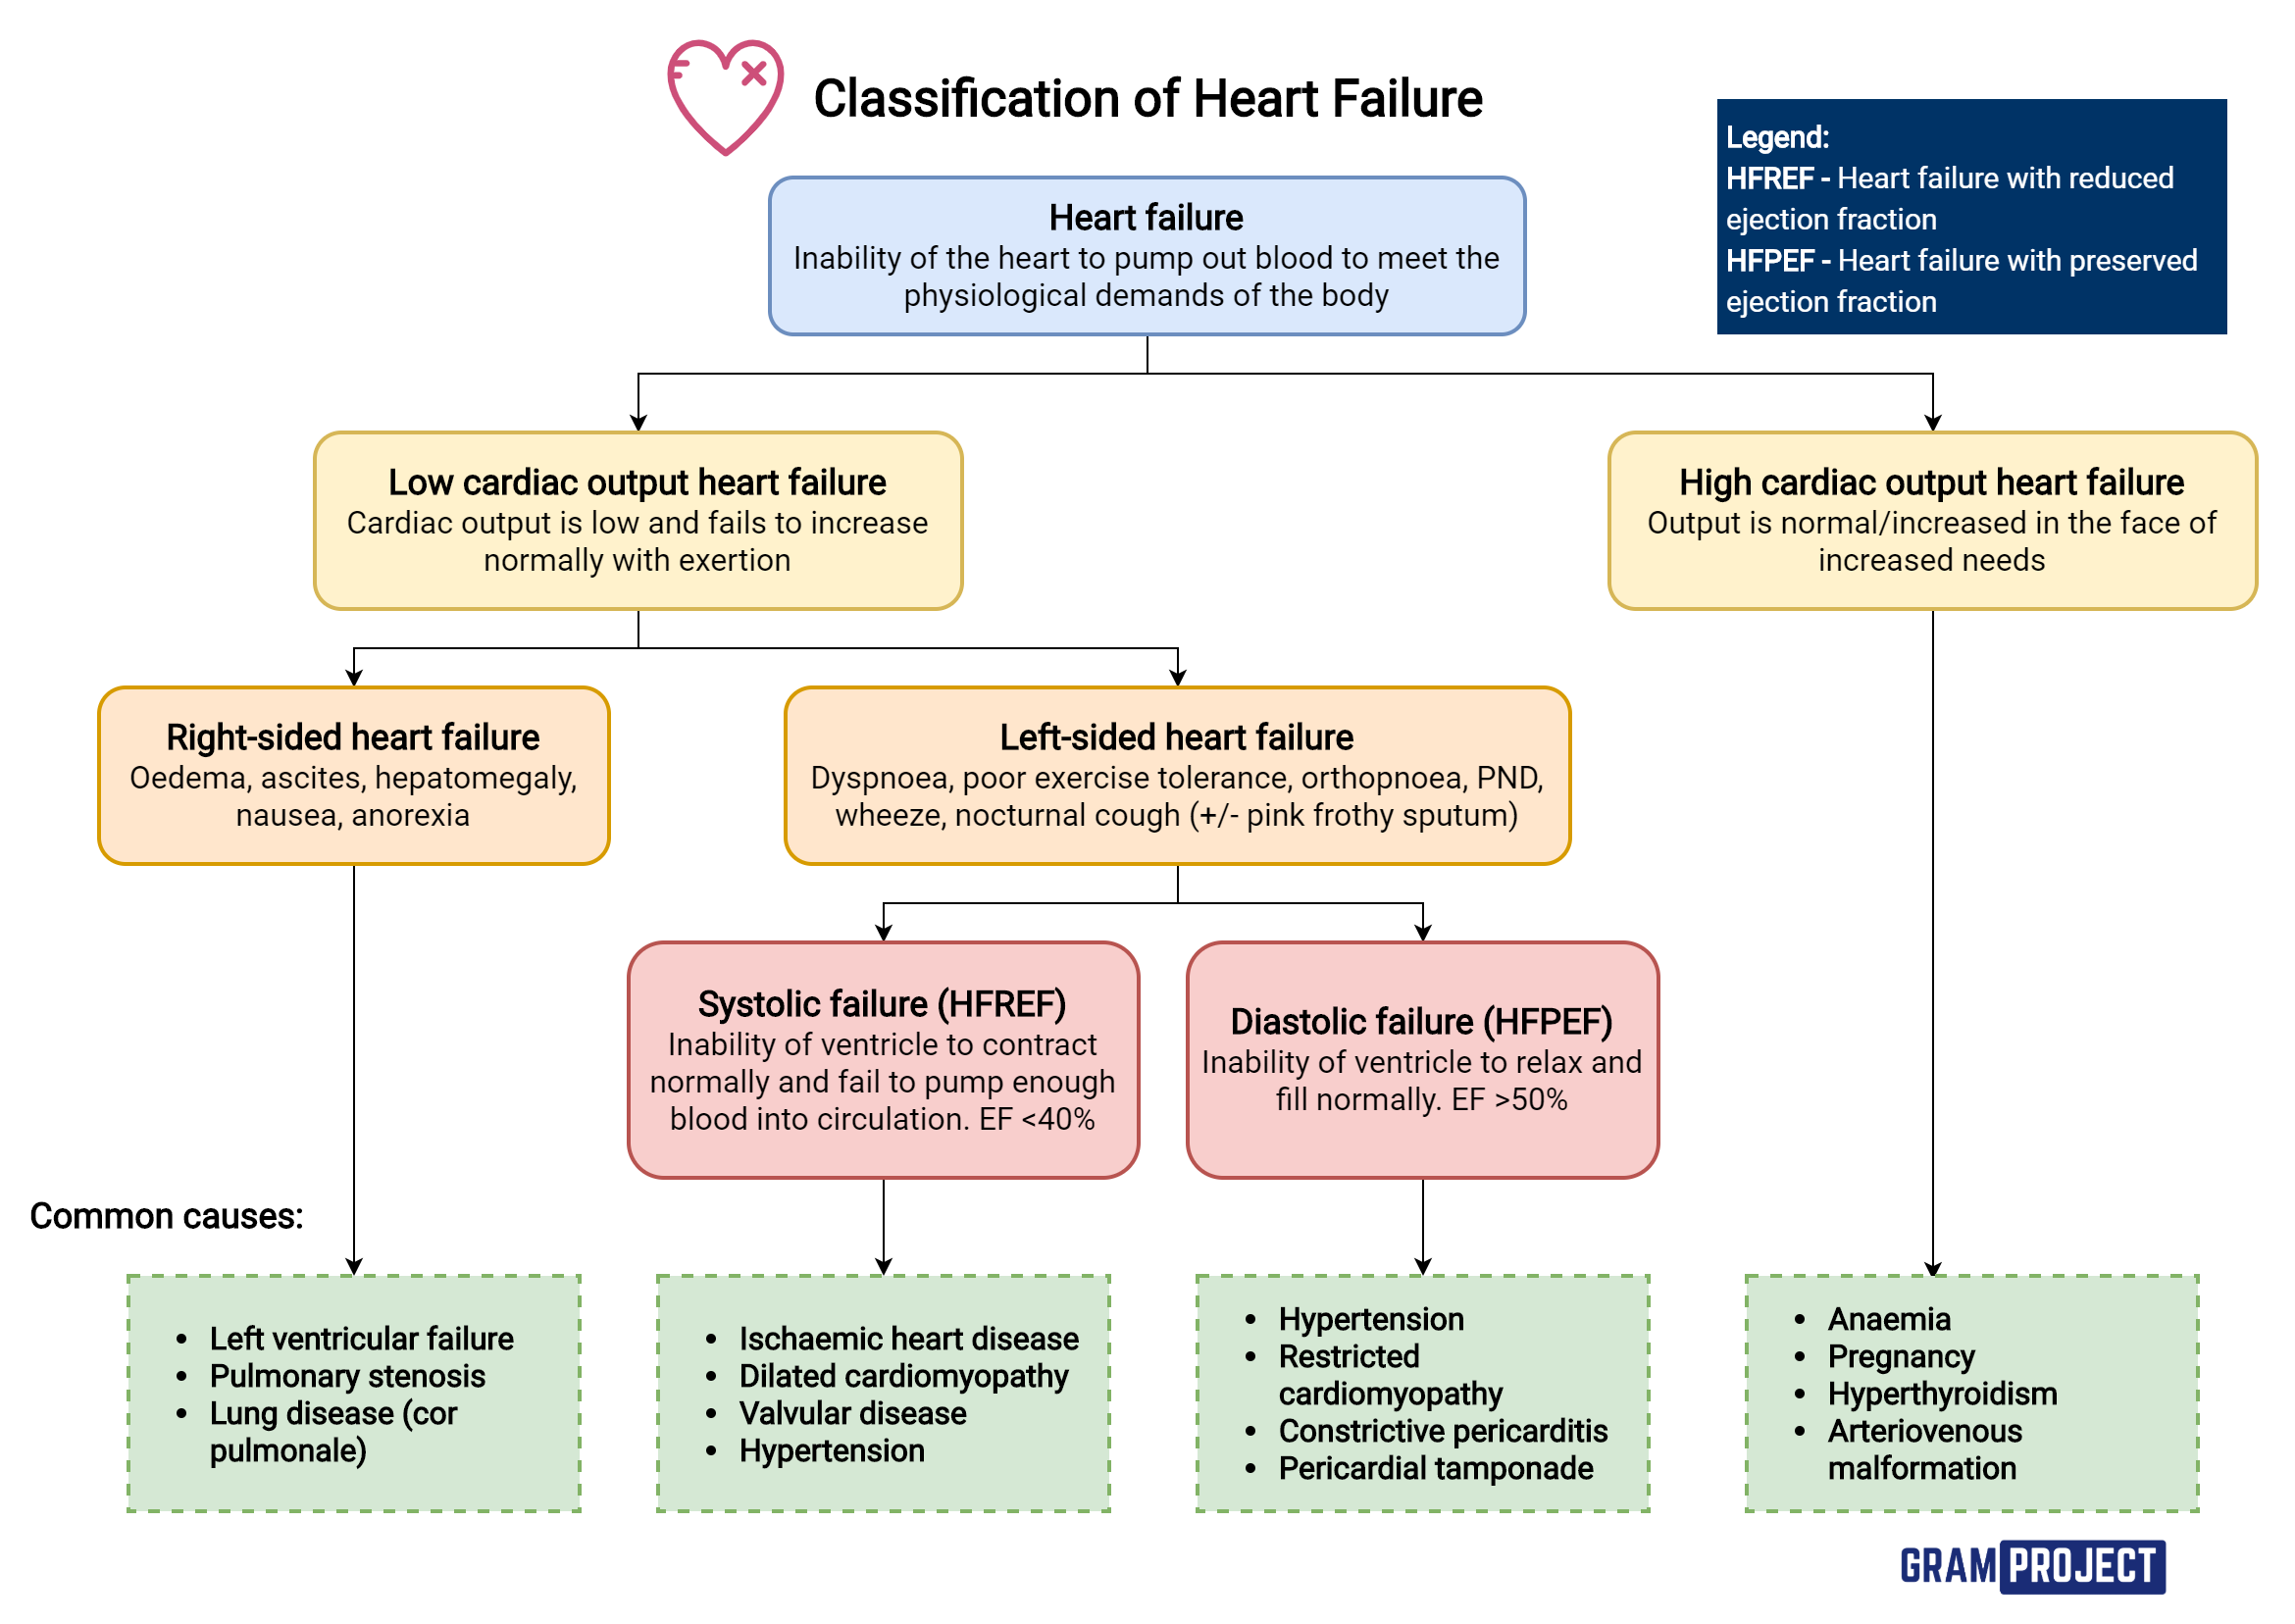 Summary of types of heart failures and their causes.